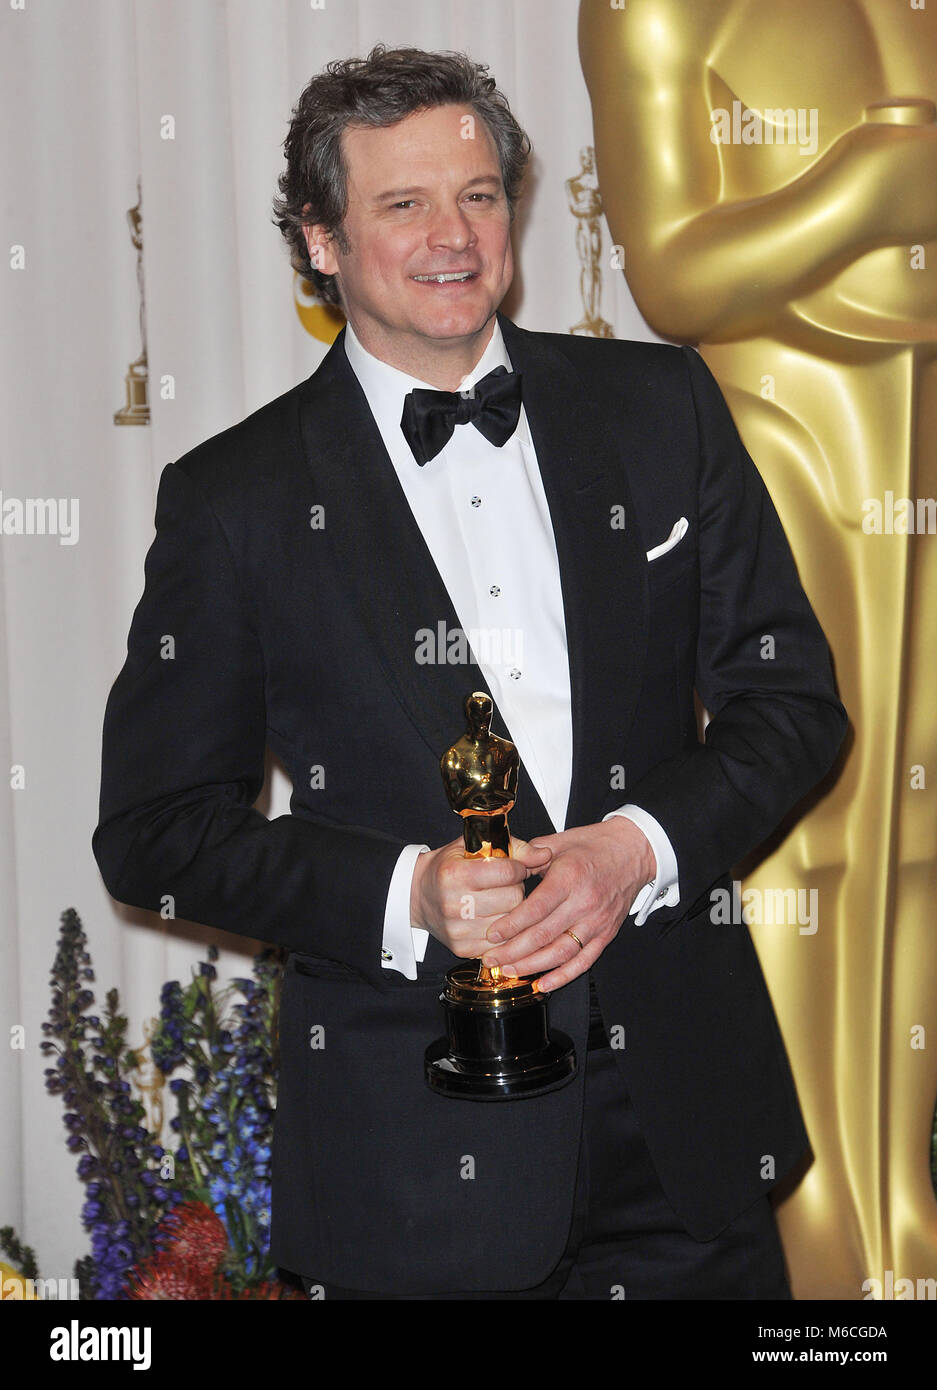 Colin Firth Oscar At The 83th Academy Awards At The Kodak Theatre Stock Photo Alamy